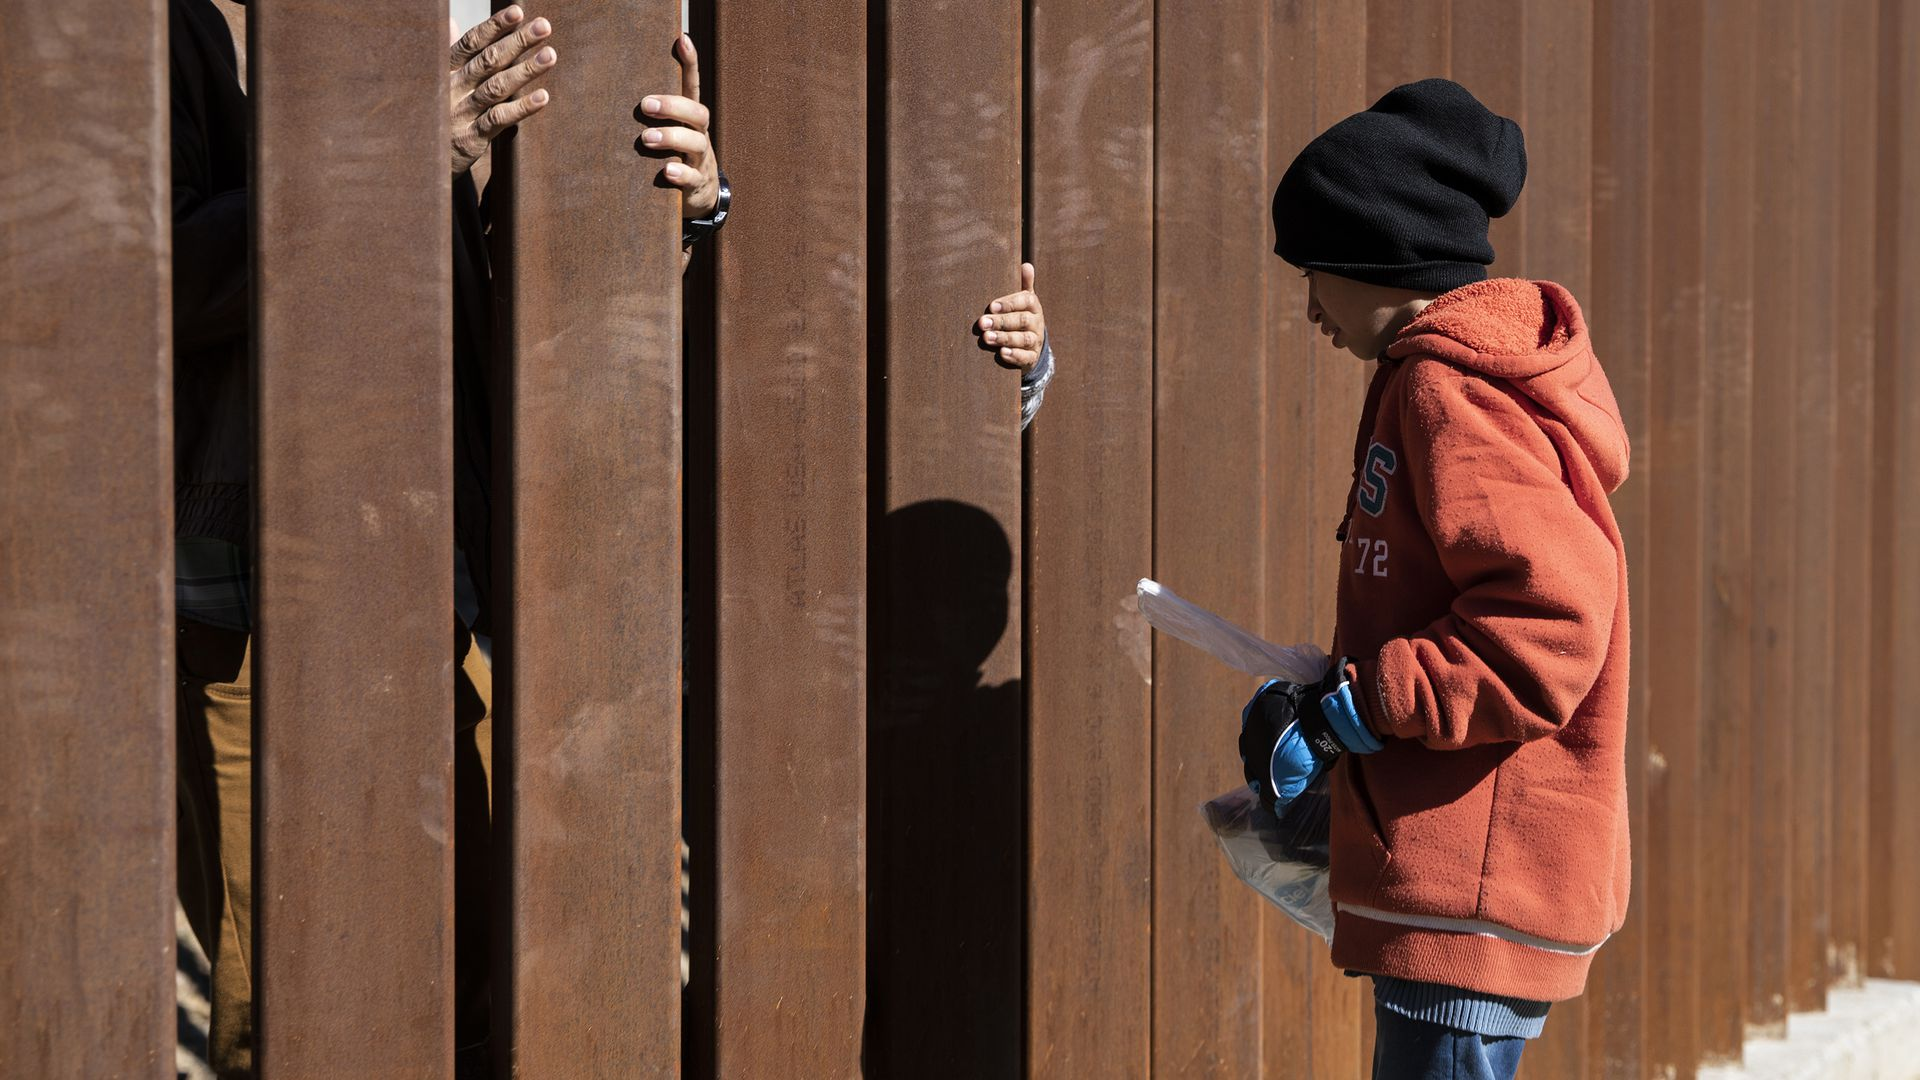 A young migrant boy with an orange hoodie and black hat stands on one side of the border wall.